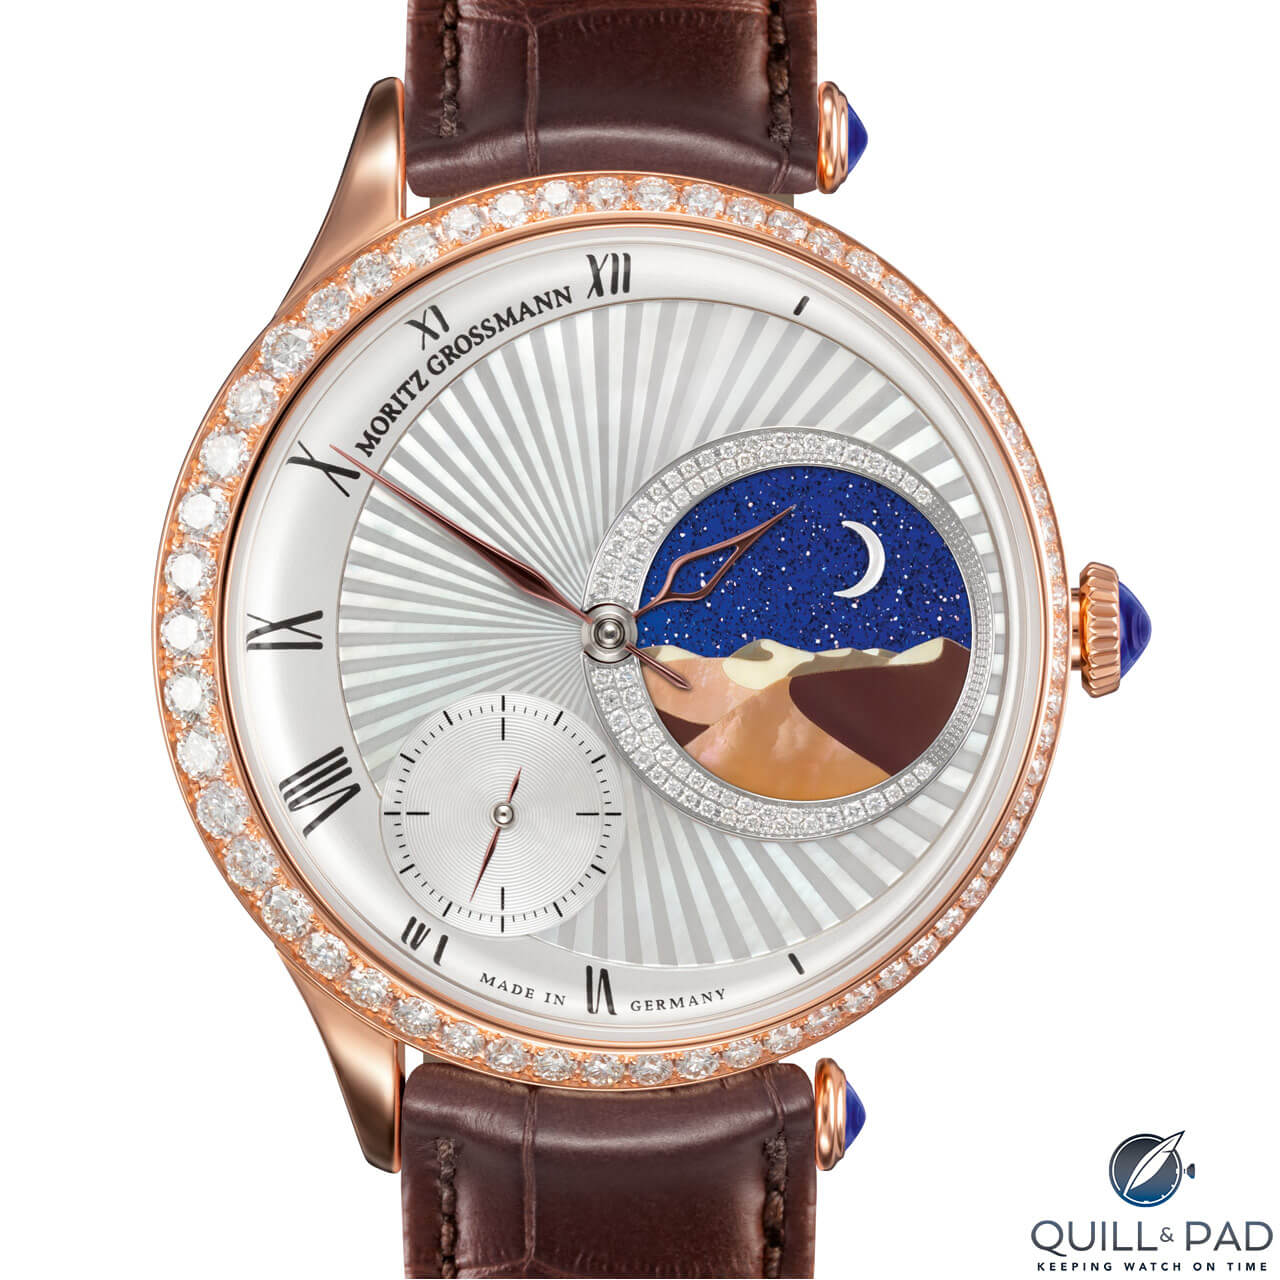 Moritz Grossman Tefnut 1001 in red gold